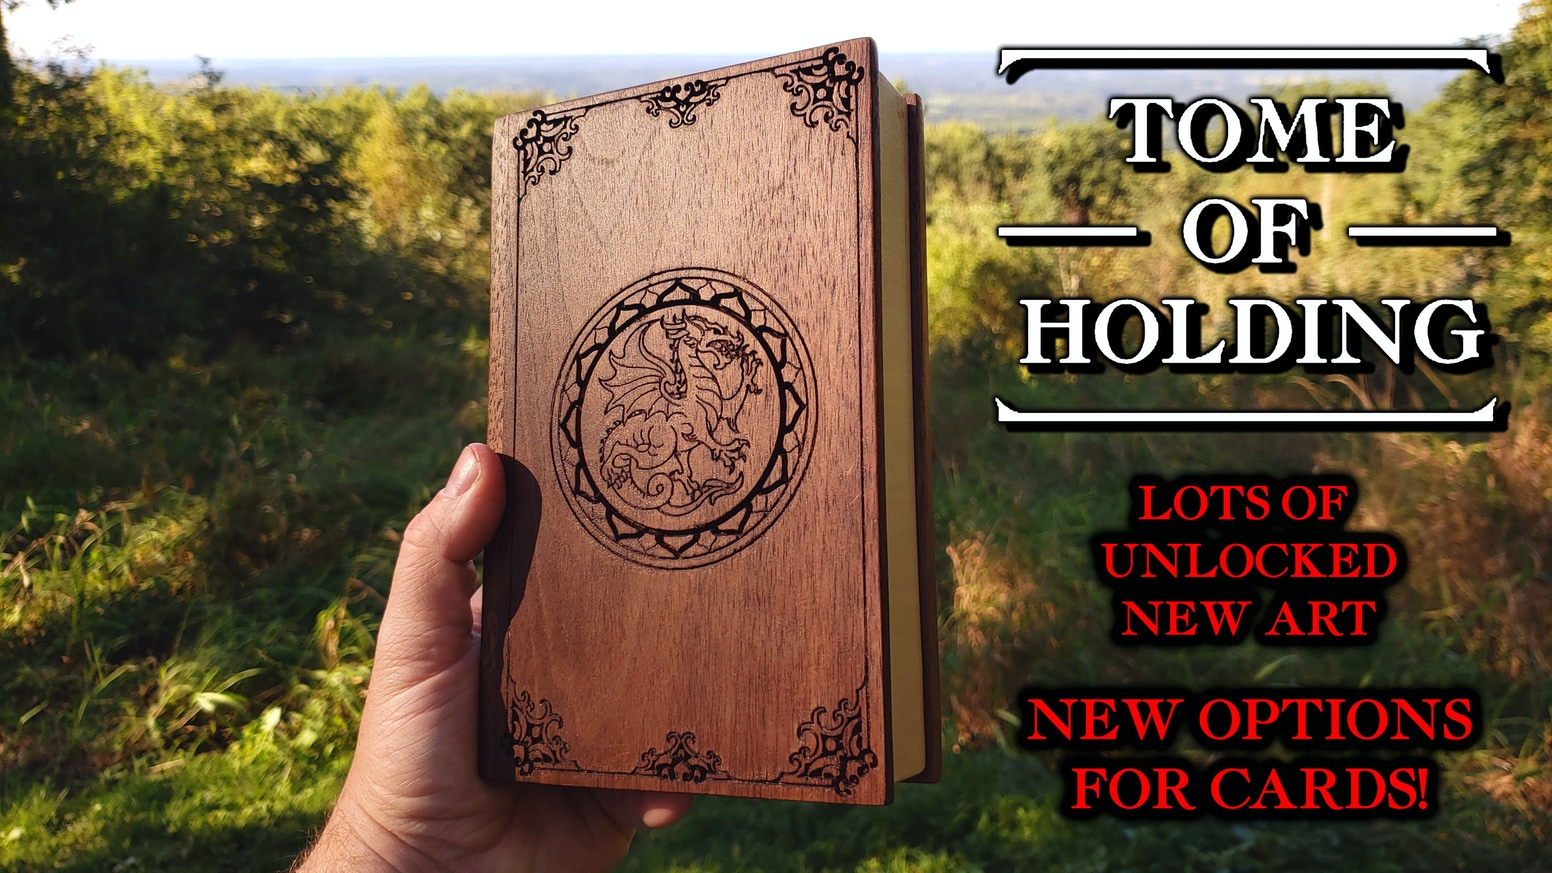 Intricate designs appear carved into the cover of this old tome.  What mysteries might lie inside?